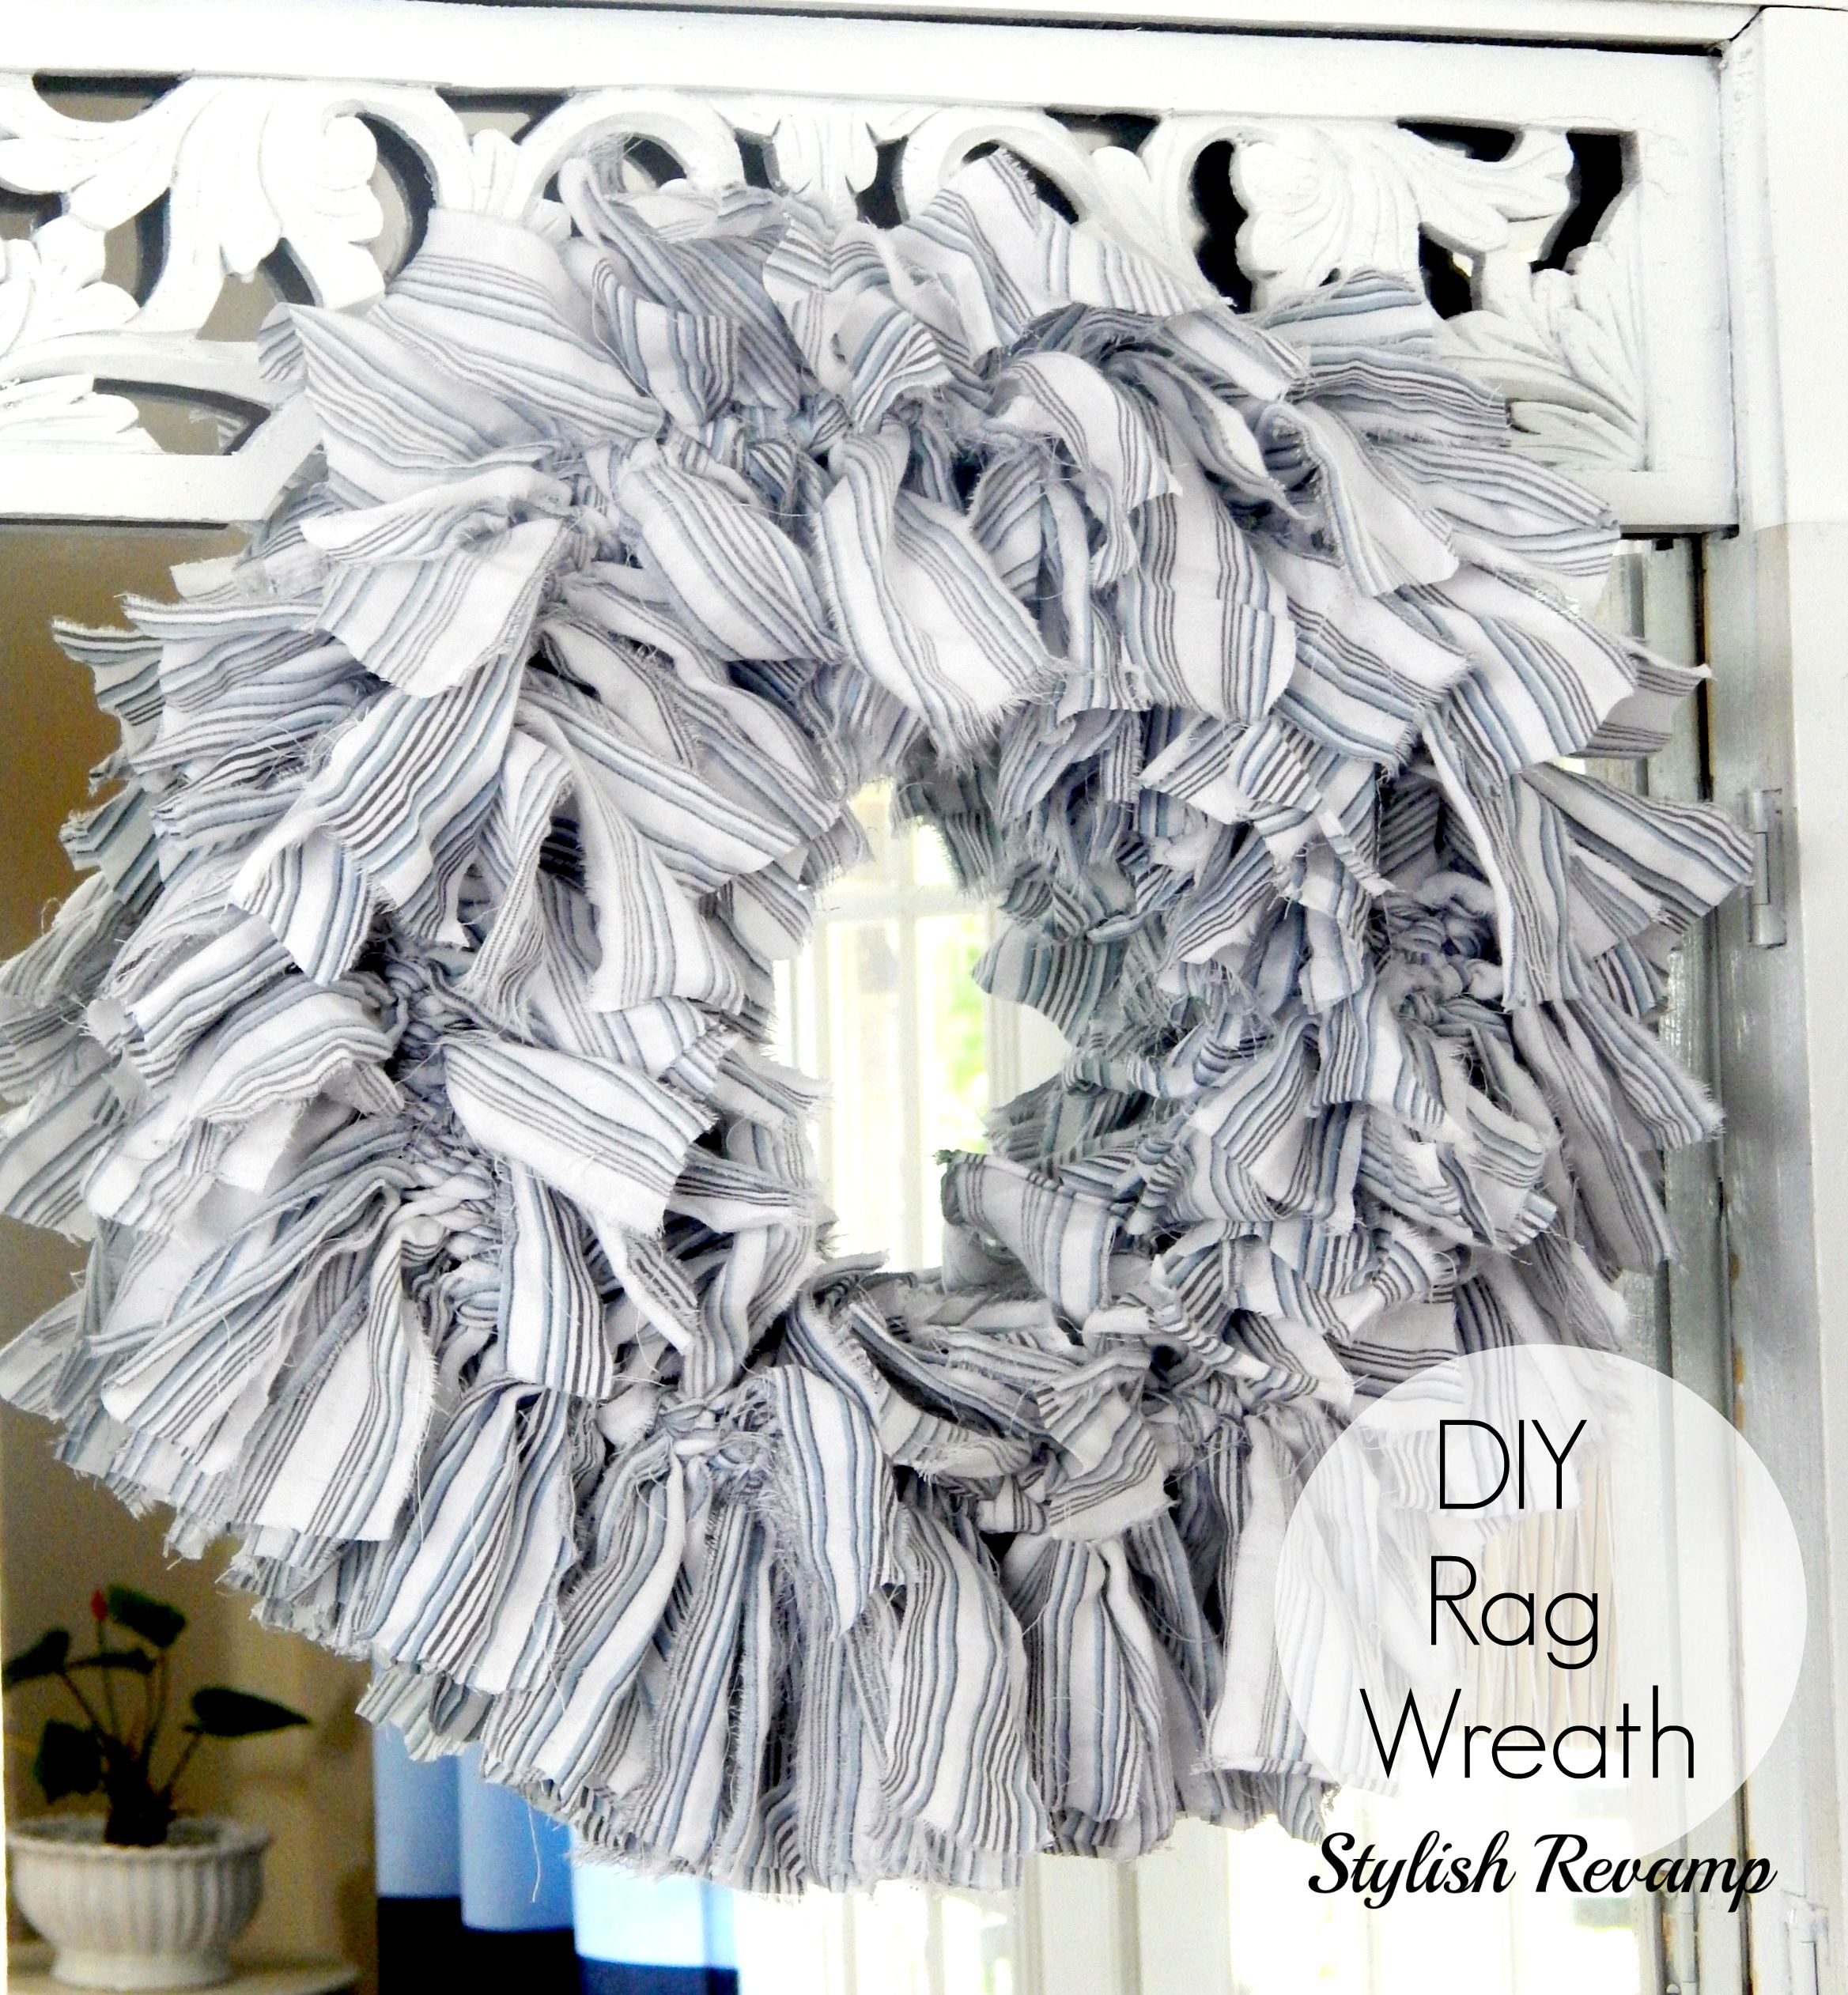 Diy Rag Wreath Stylish Revamp